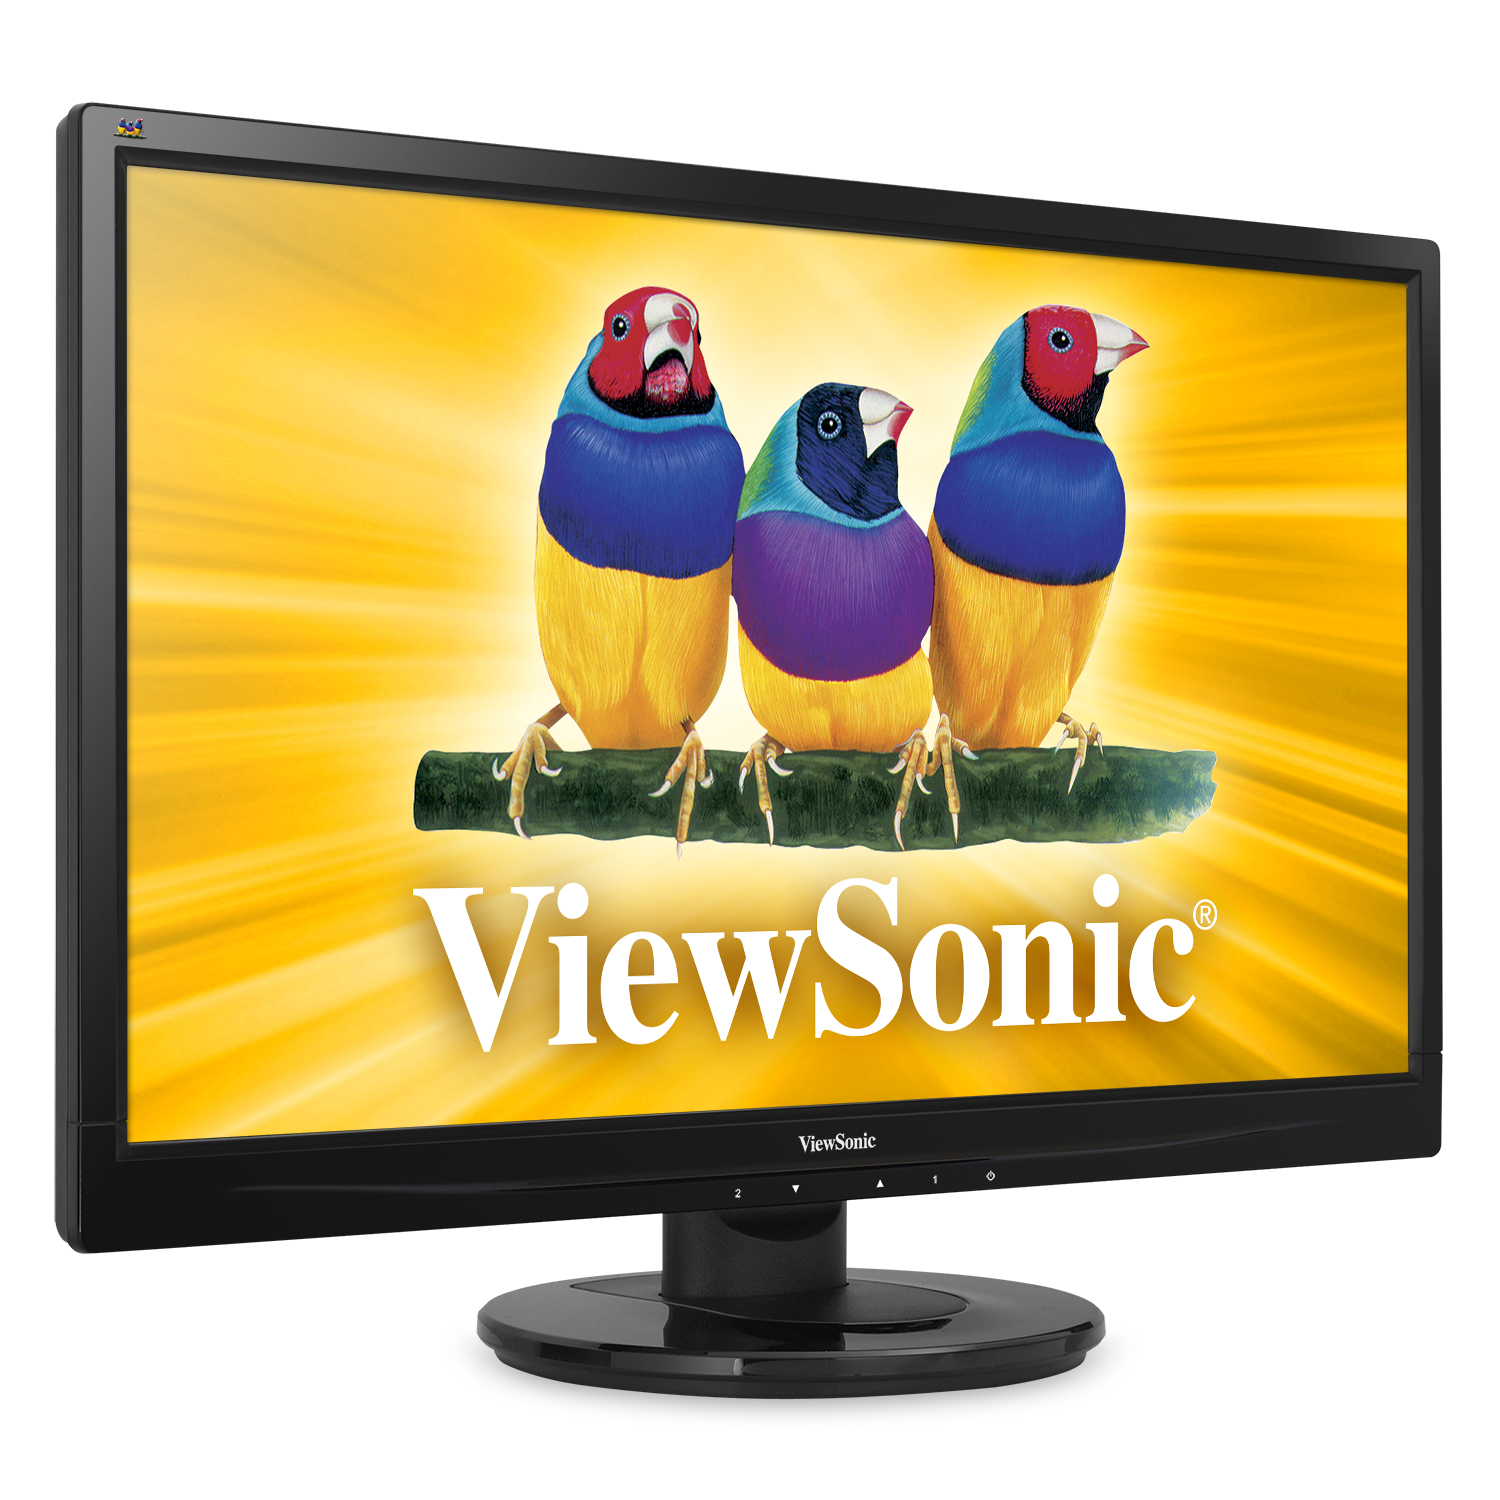 ViewSonic 24 VS15453 DVI/VGA 1080p Widescreen Ultra-Slim ...